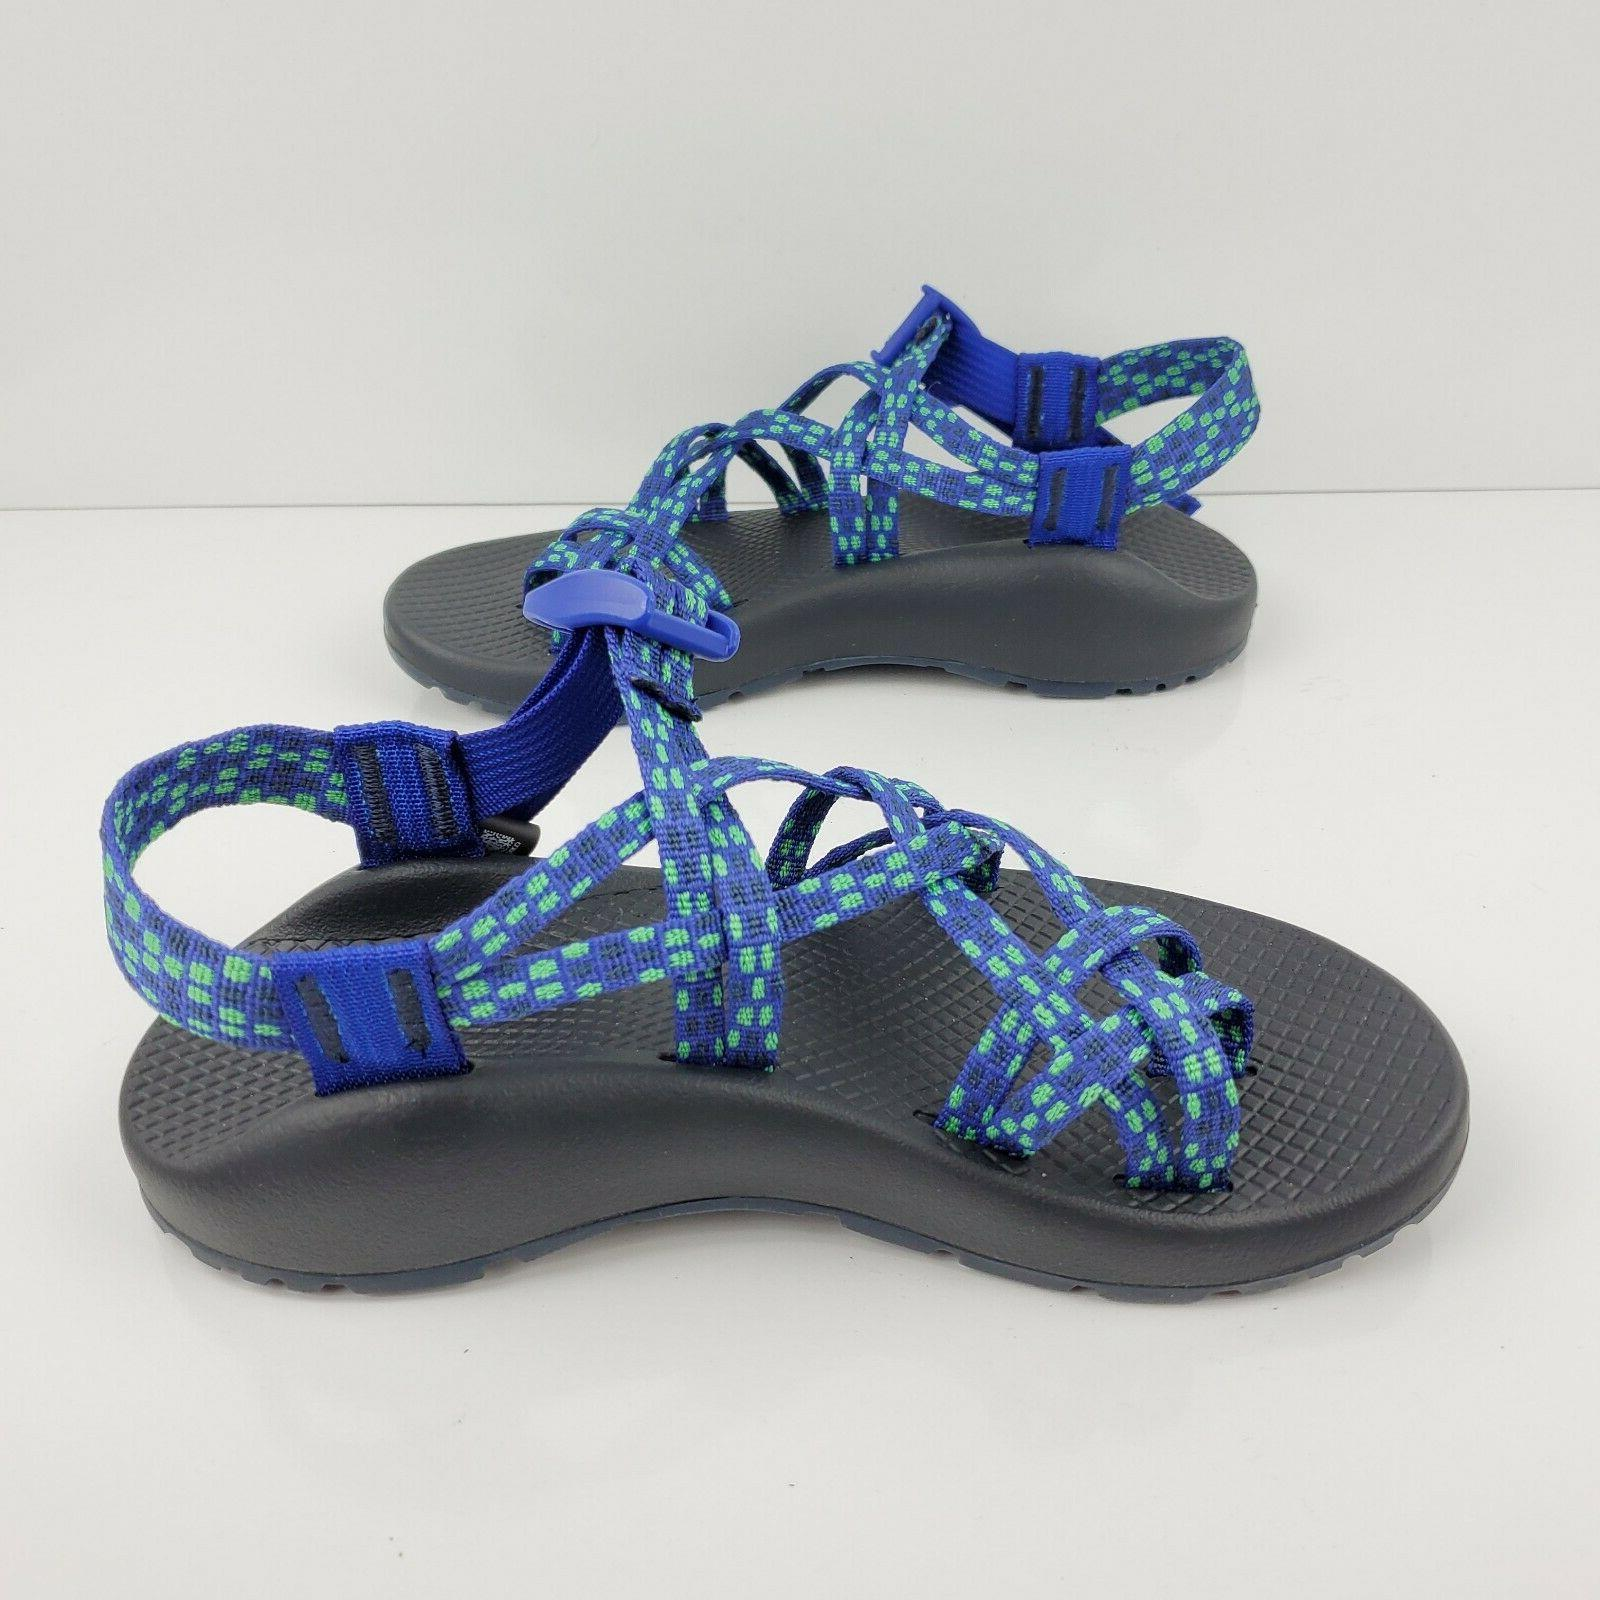 Chaco ZX/2 Sandals Shoes NEW